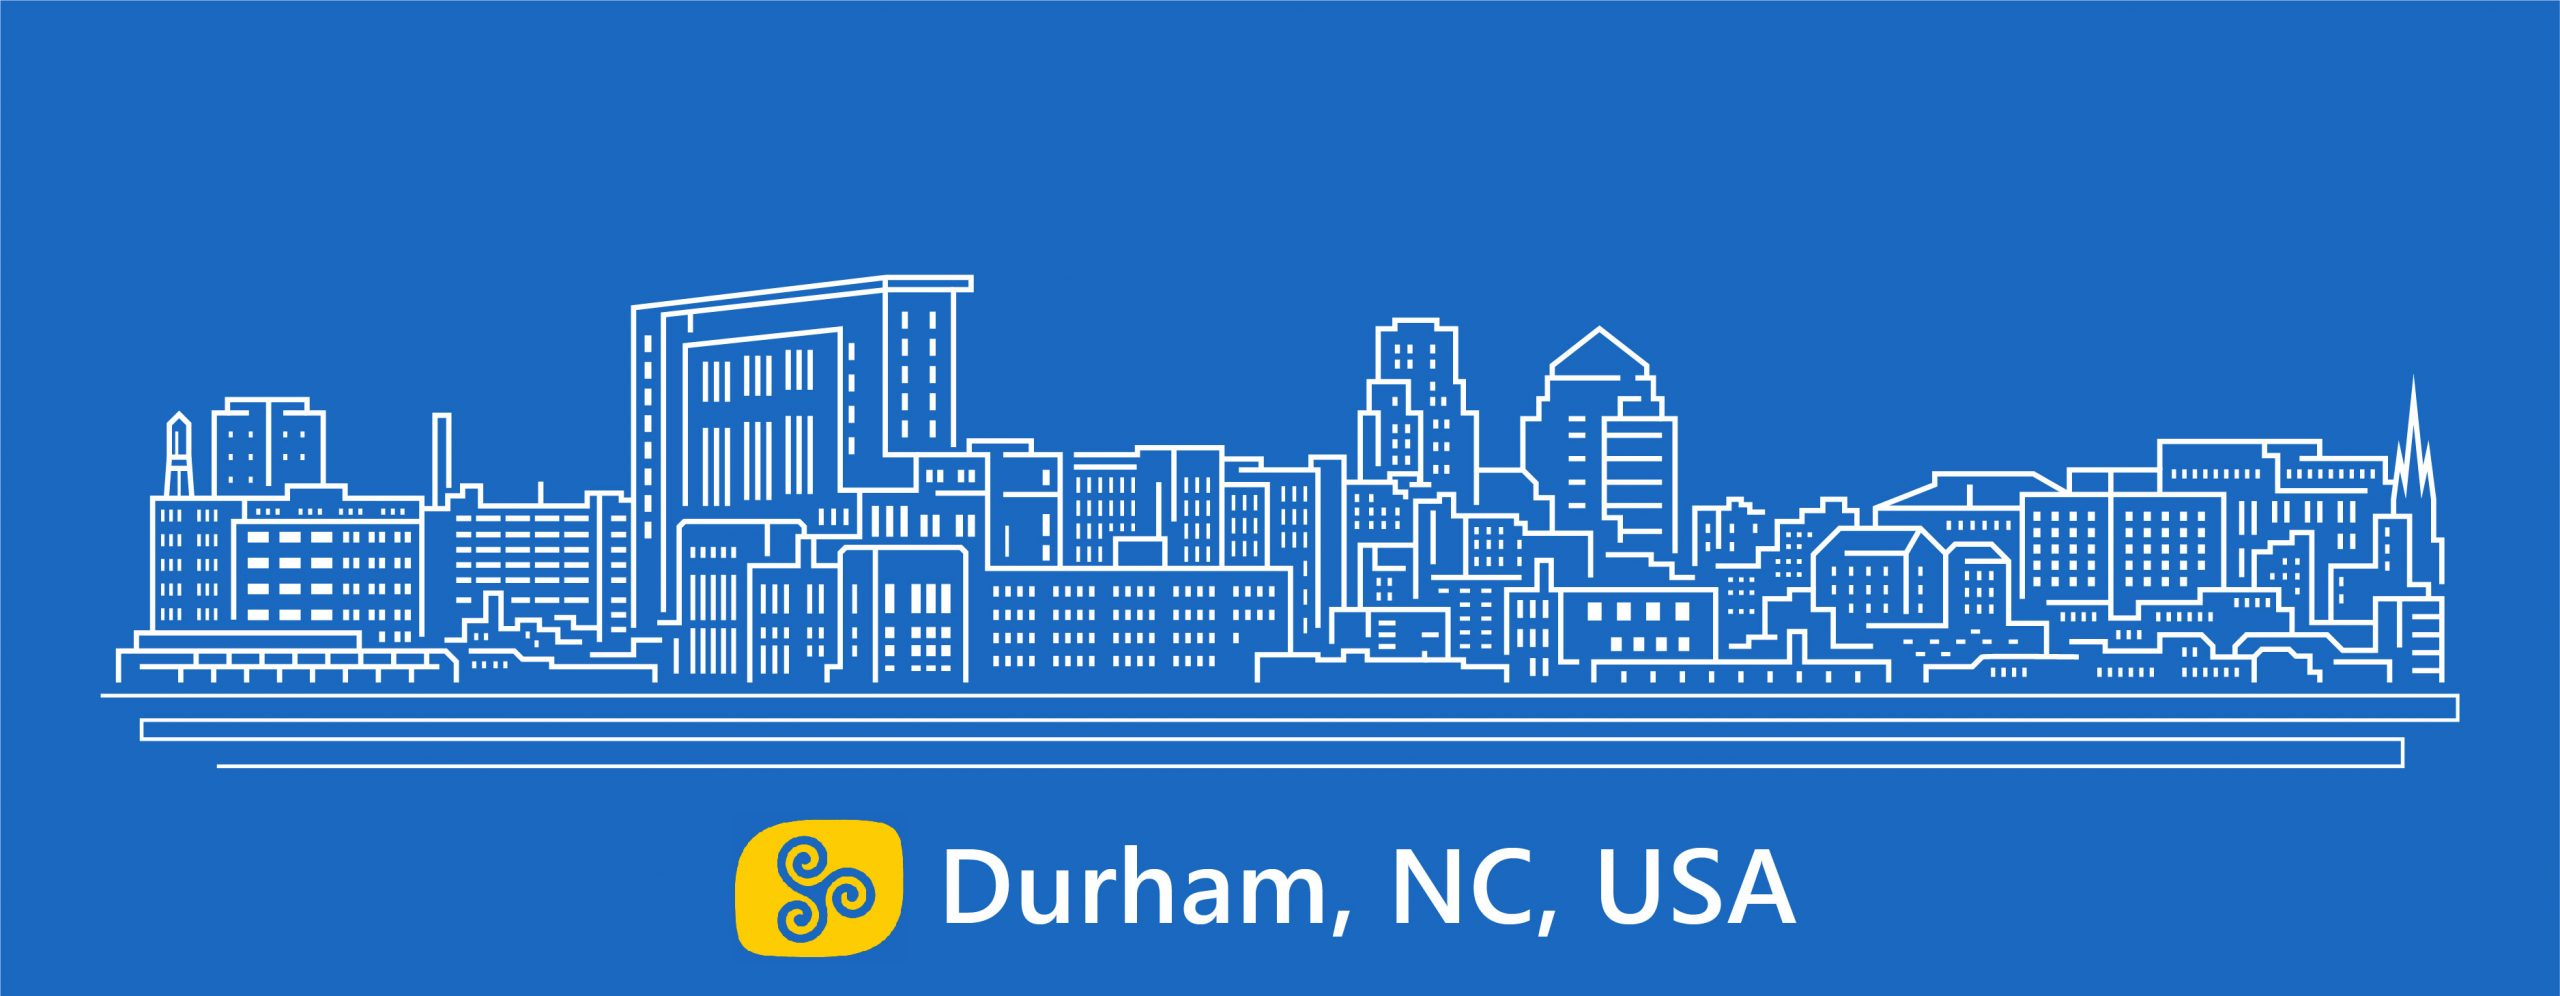 Durham blue overlay with city name_Final_2.0